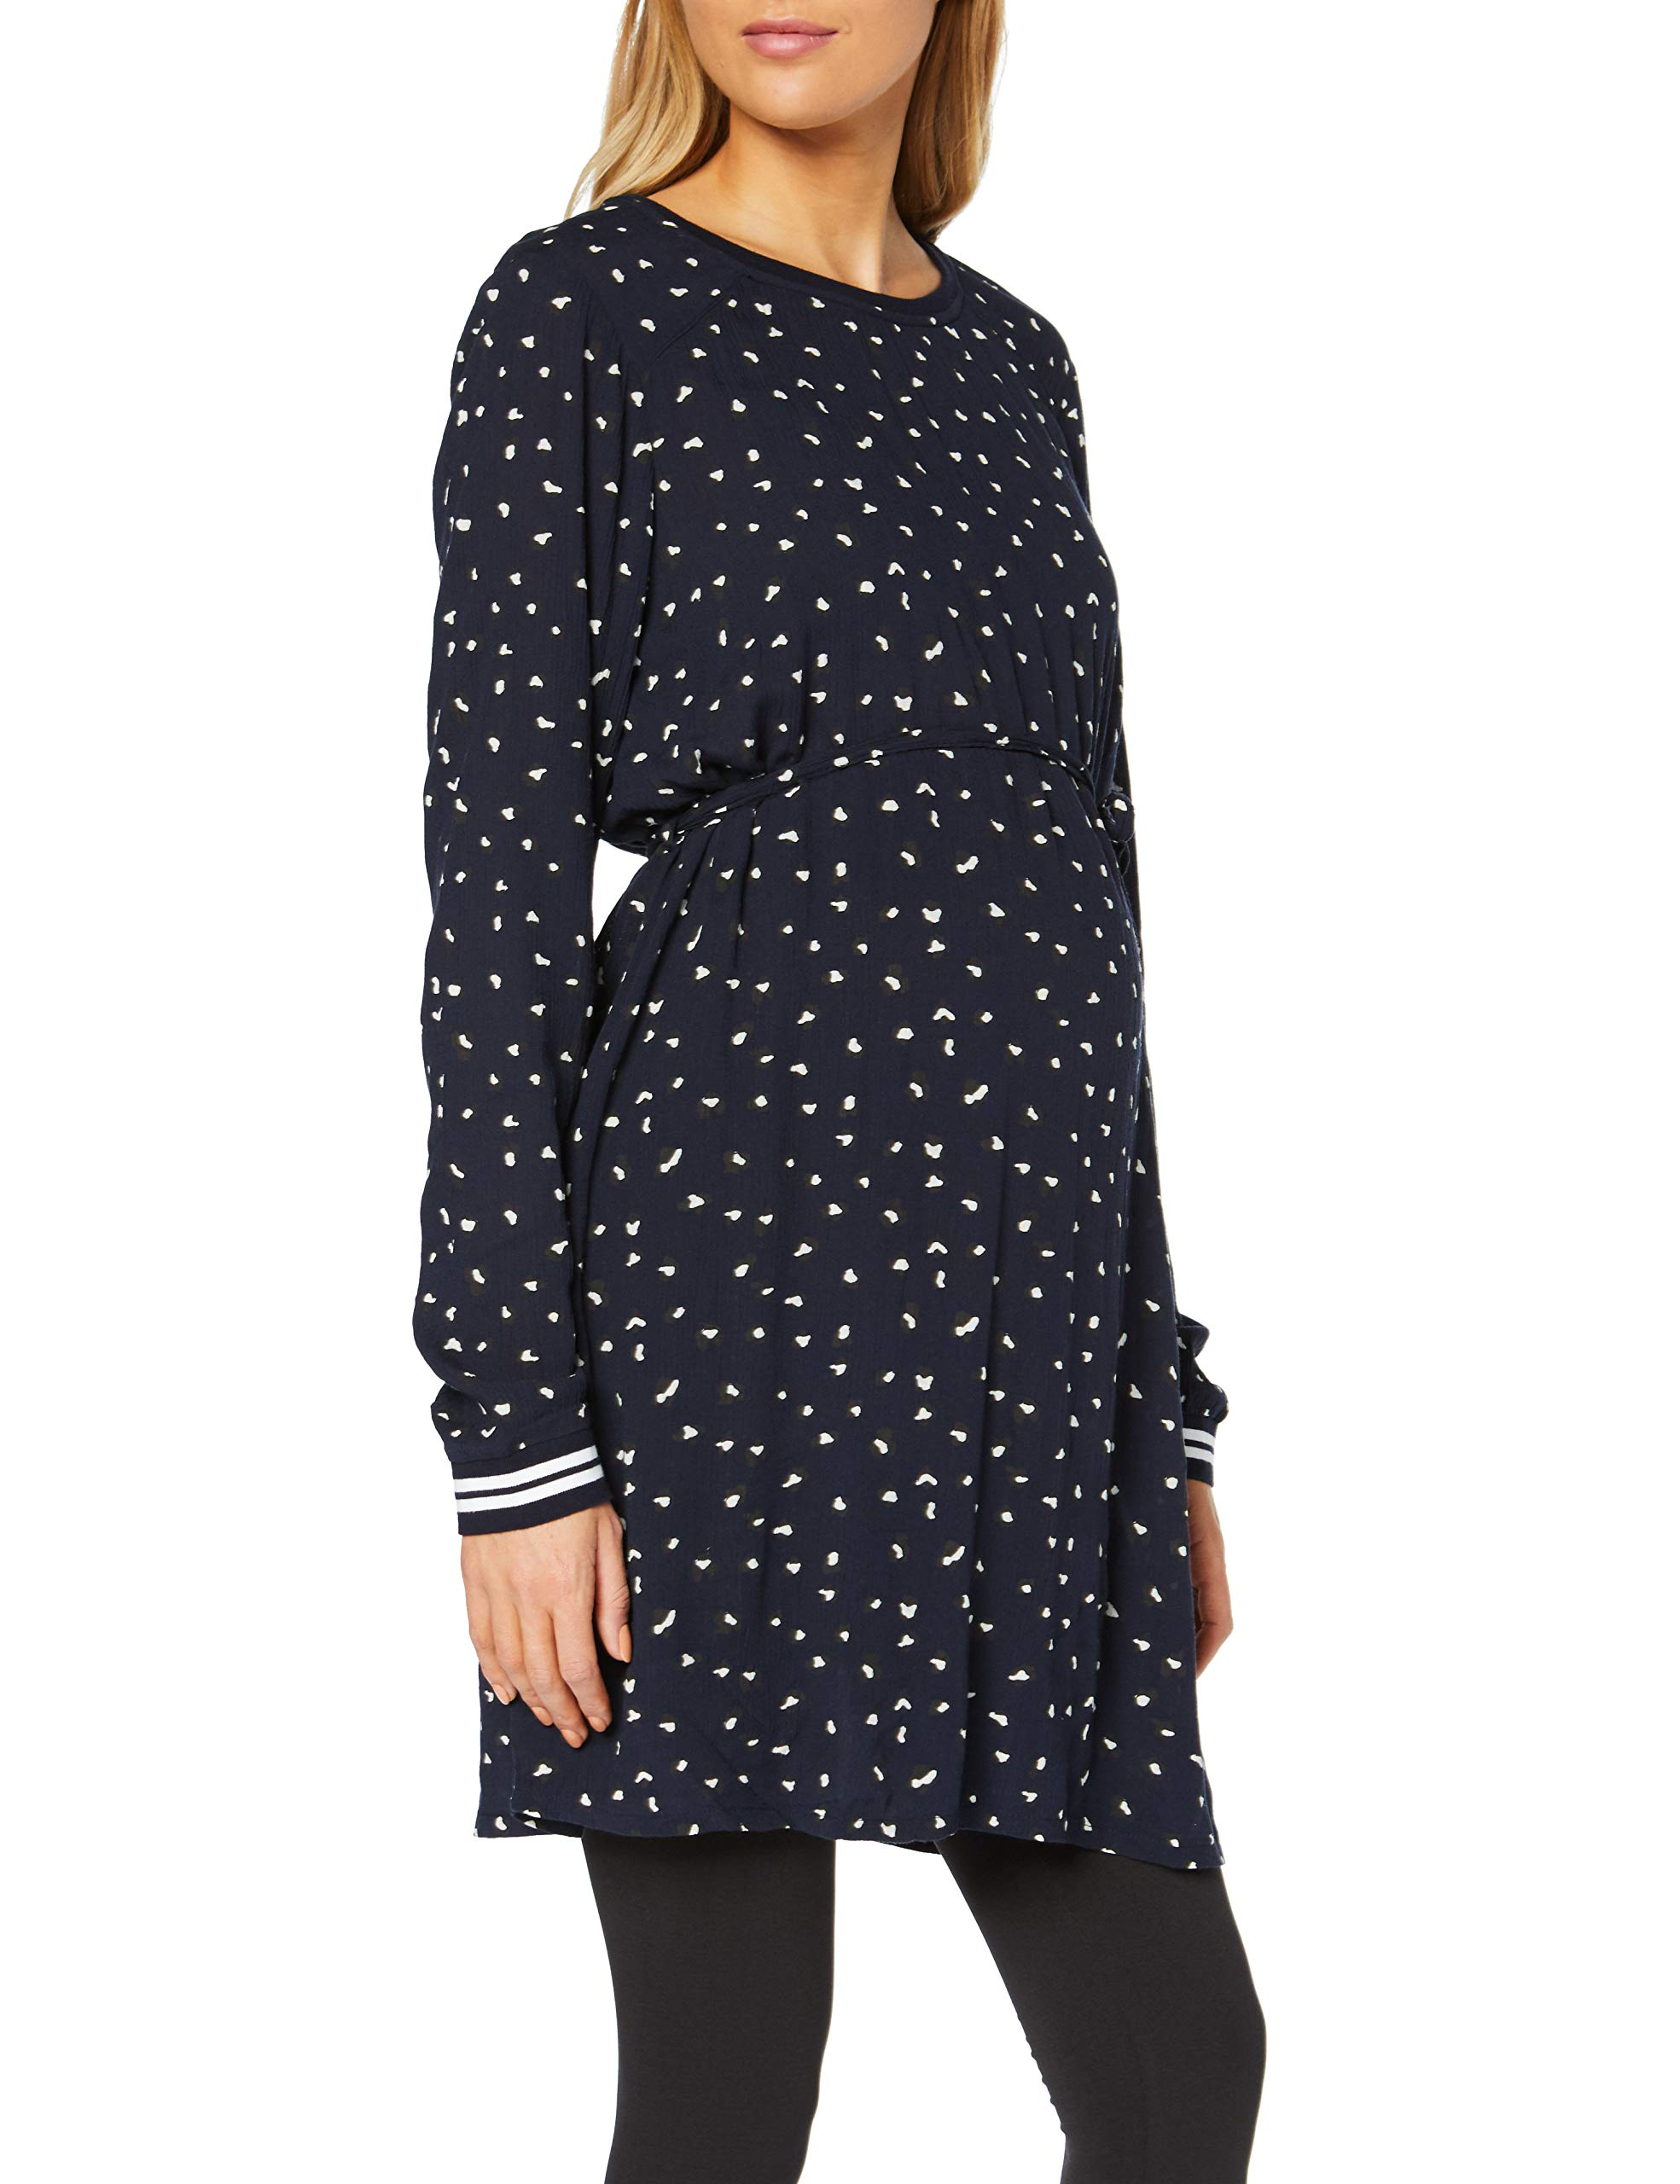 Ls Aop Remy P29140taille Sky Woven Noppies RobeBleunight FabricantMediumFemme Tunic zVpMSU